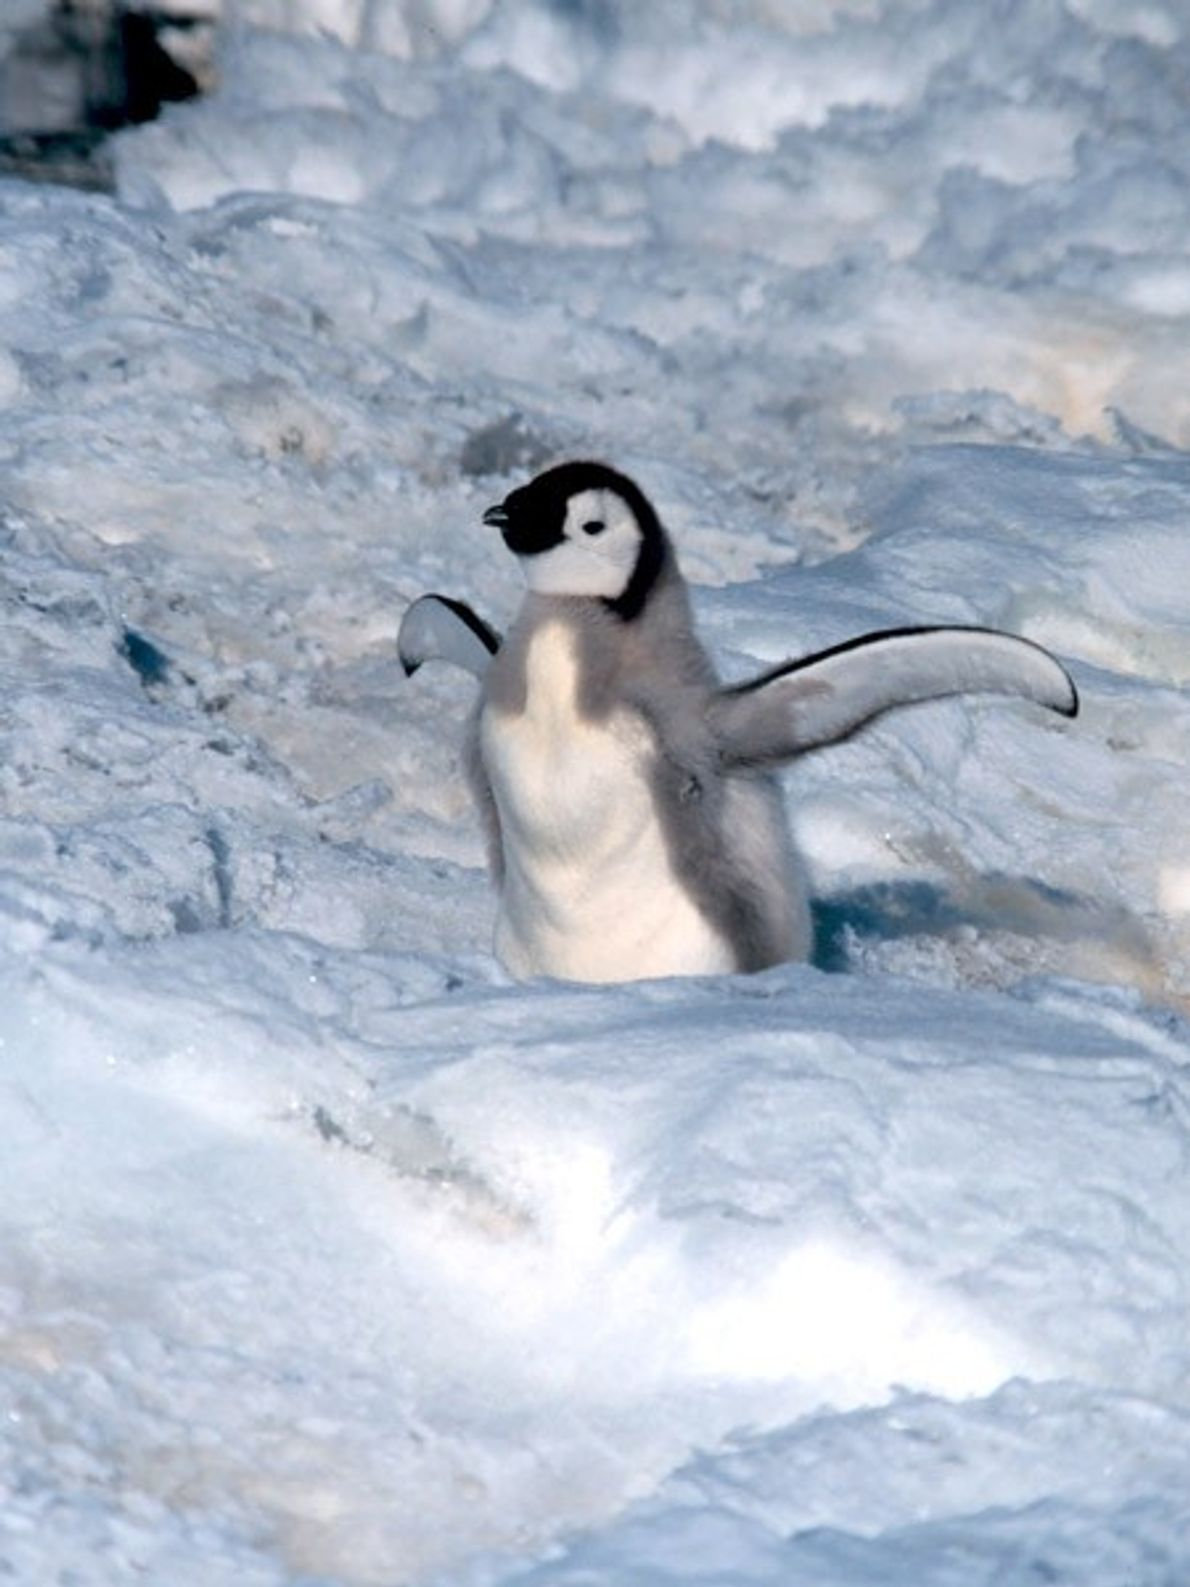 Wings spread wide, an Antarctic emperor penguin baby awaits its next meal.